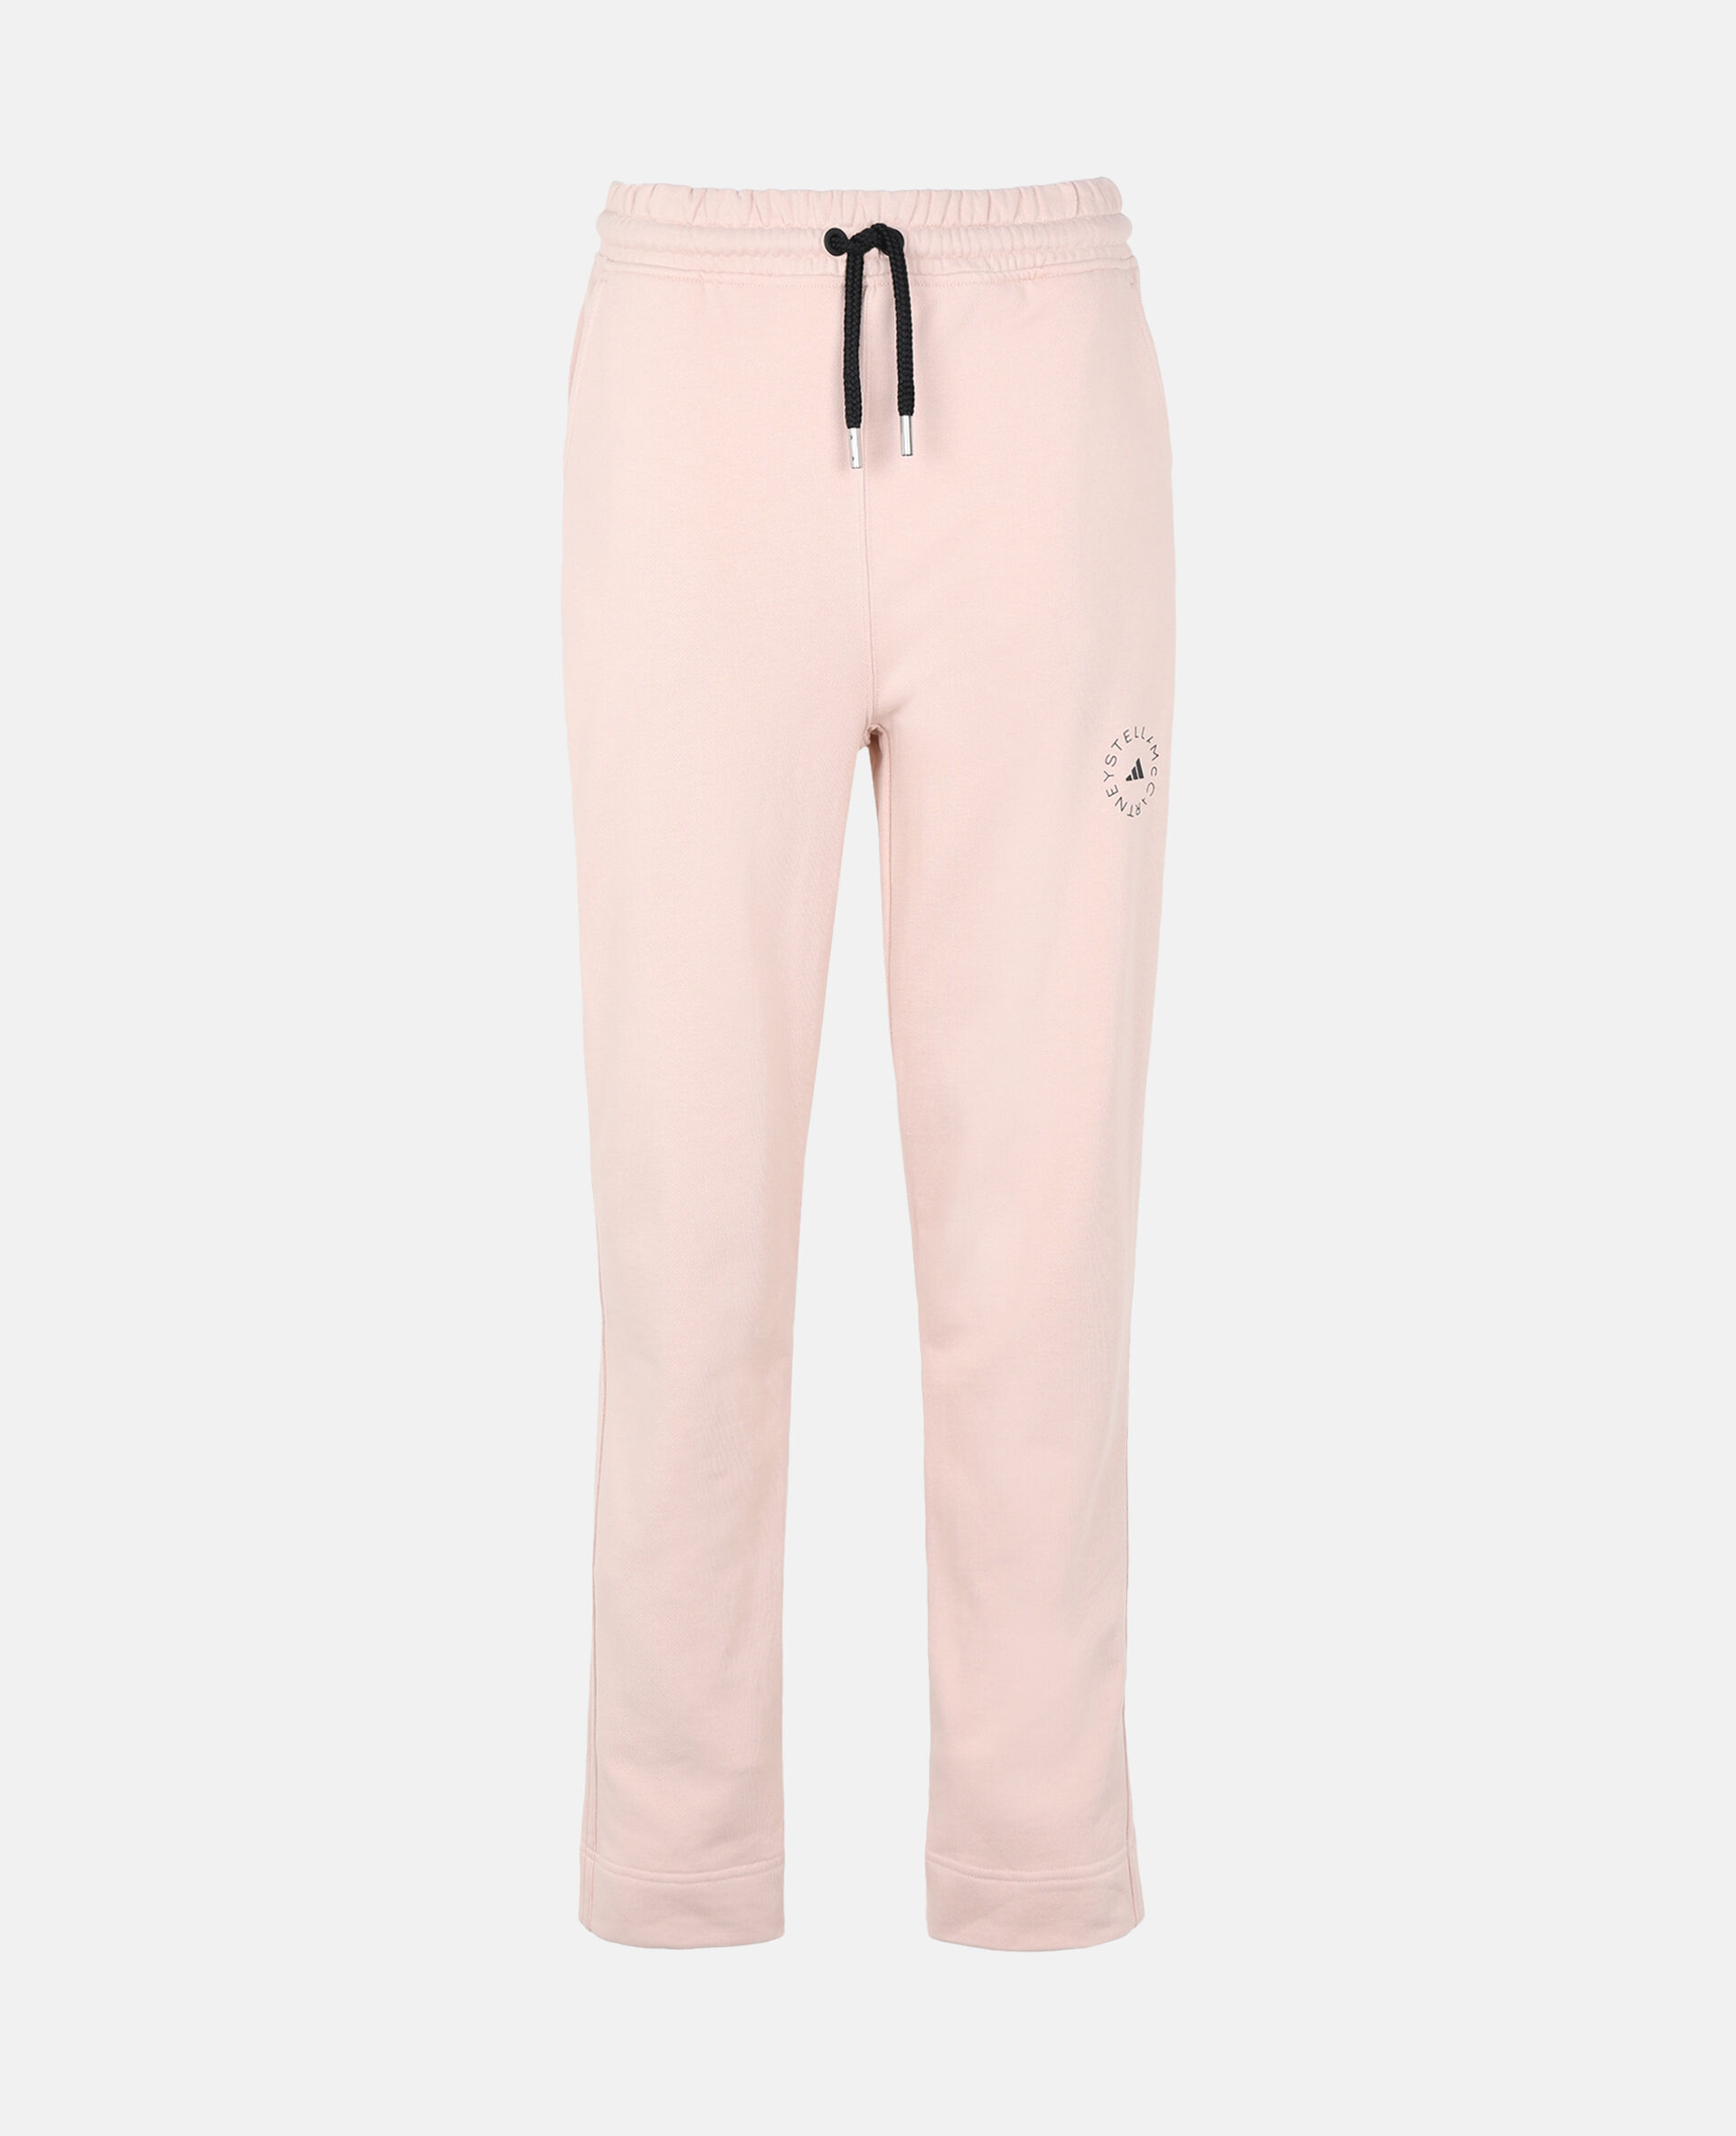 Pink Training Sweatpants -Pink-large image number 0